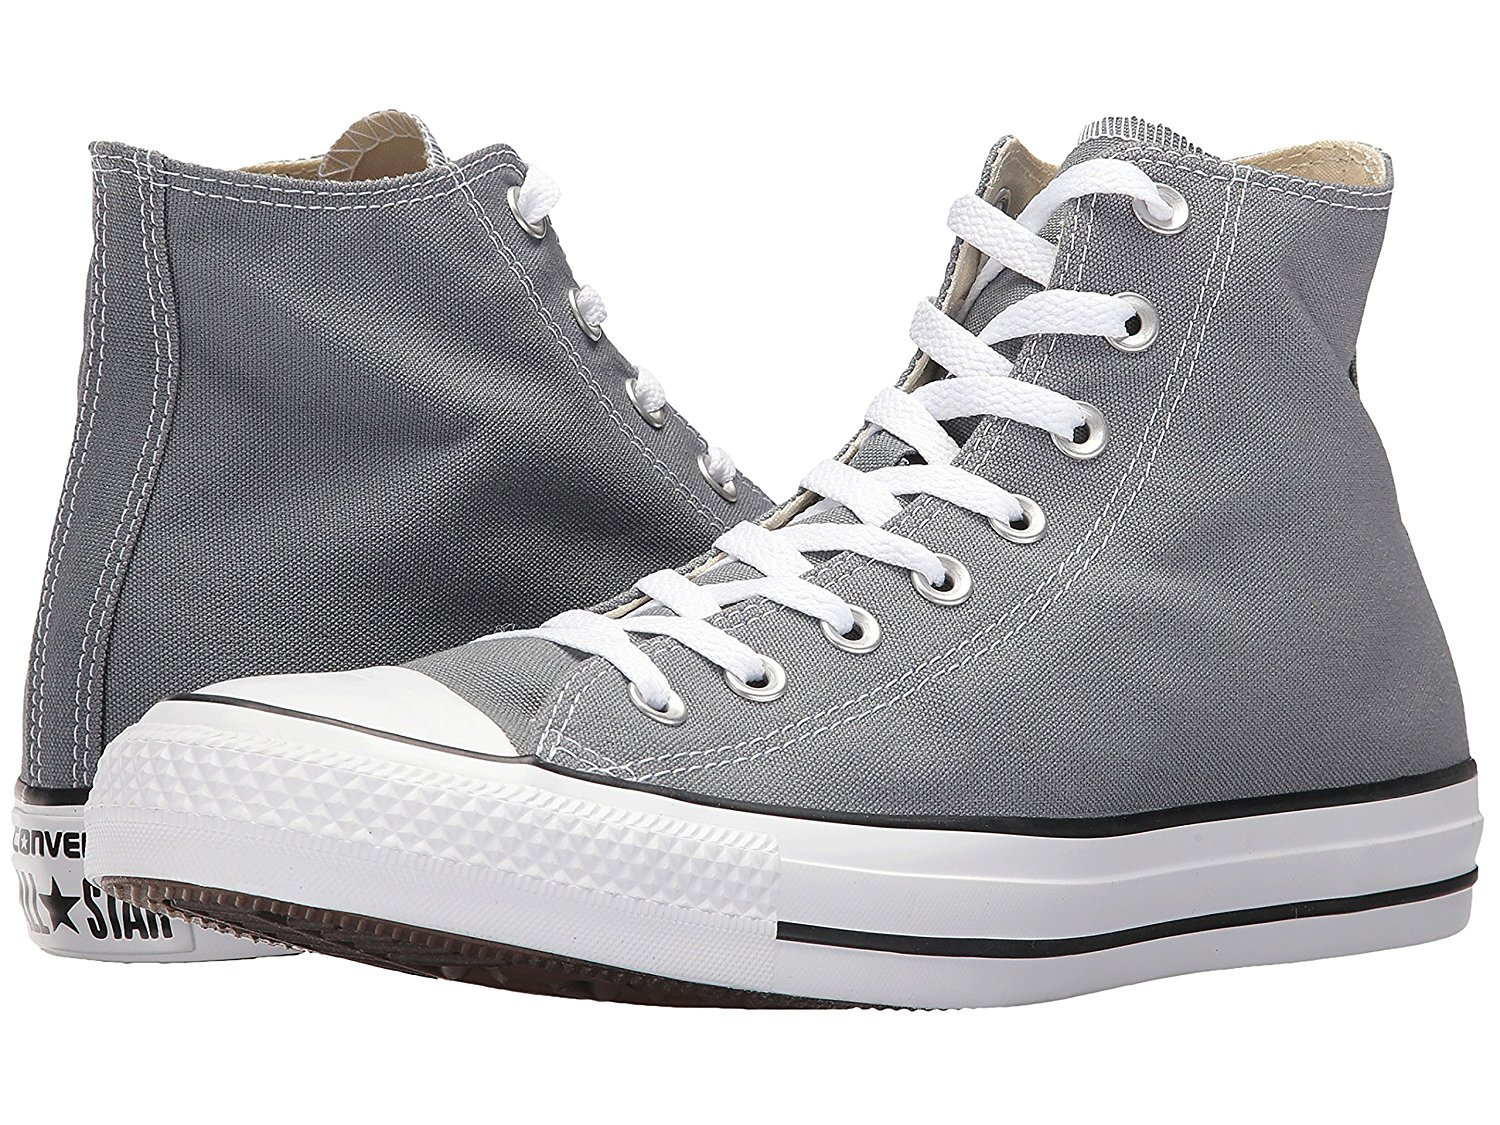 Converse Chuck Taylor All Star High Top B01N2VS9QV 4 D(M) US|Cool Grey